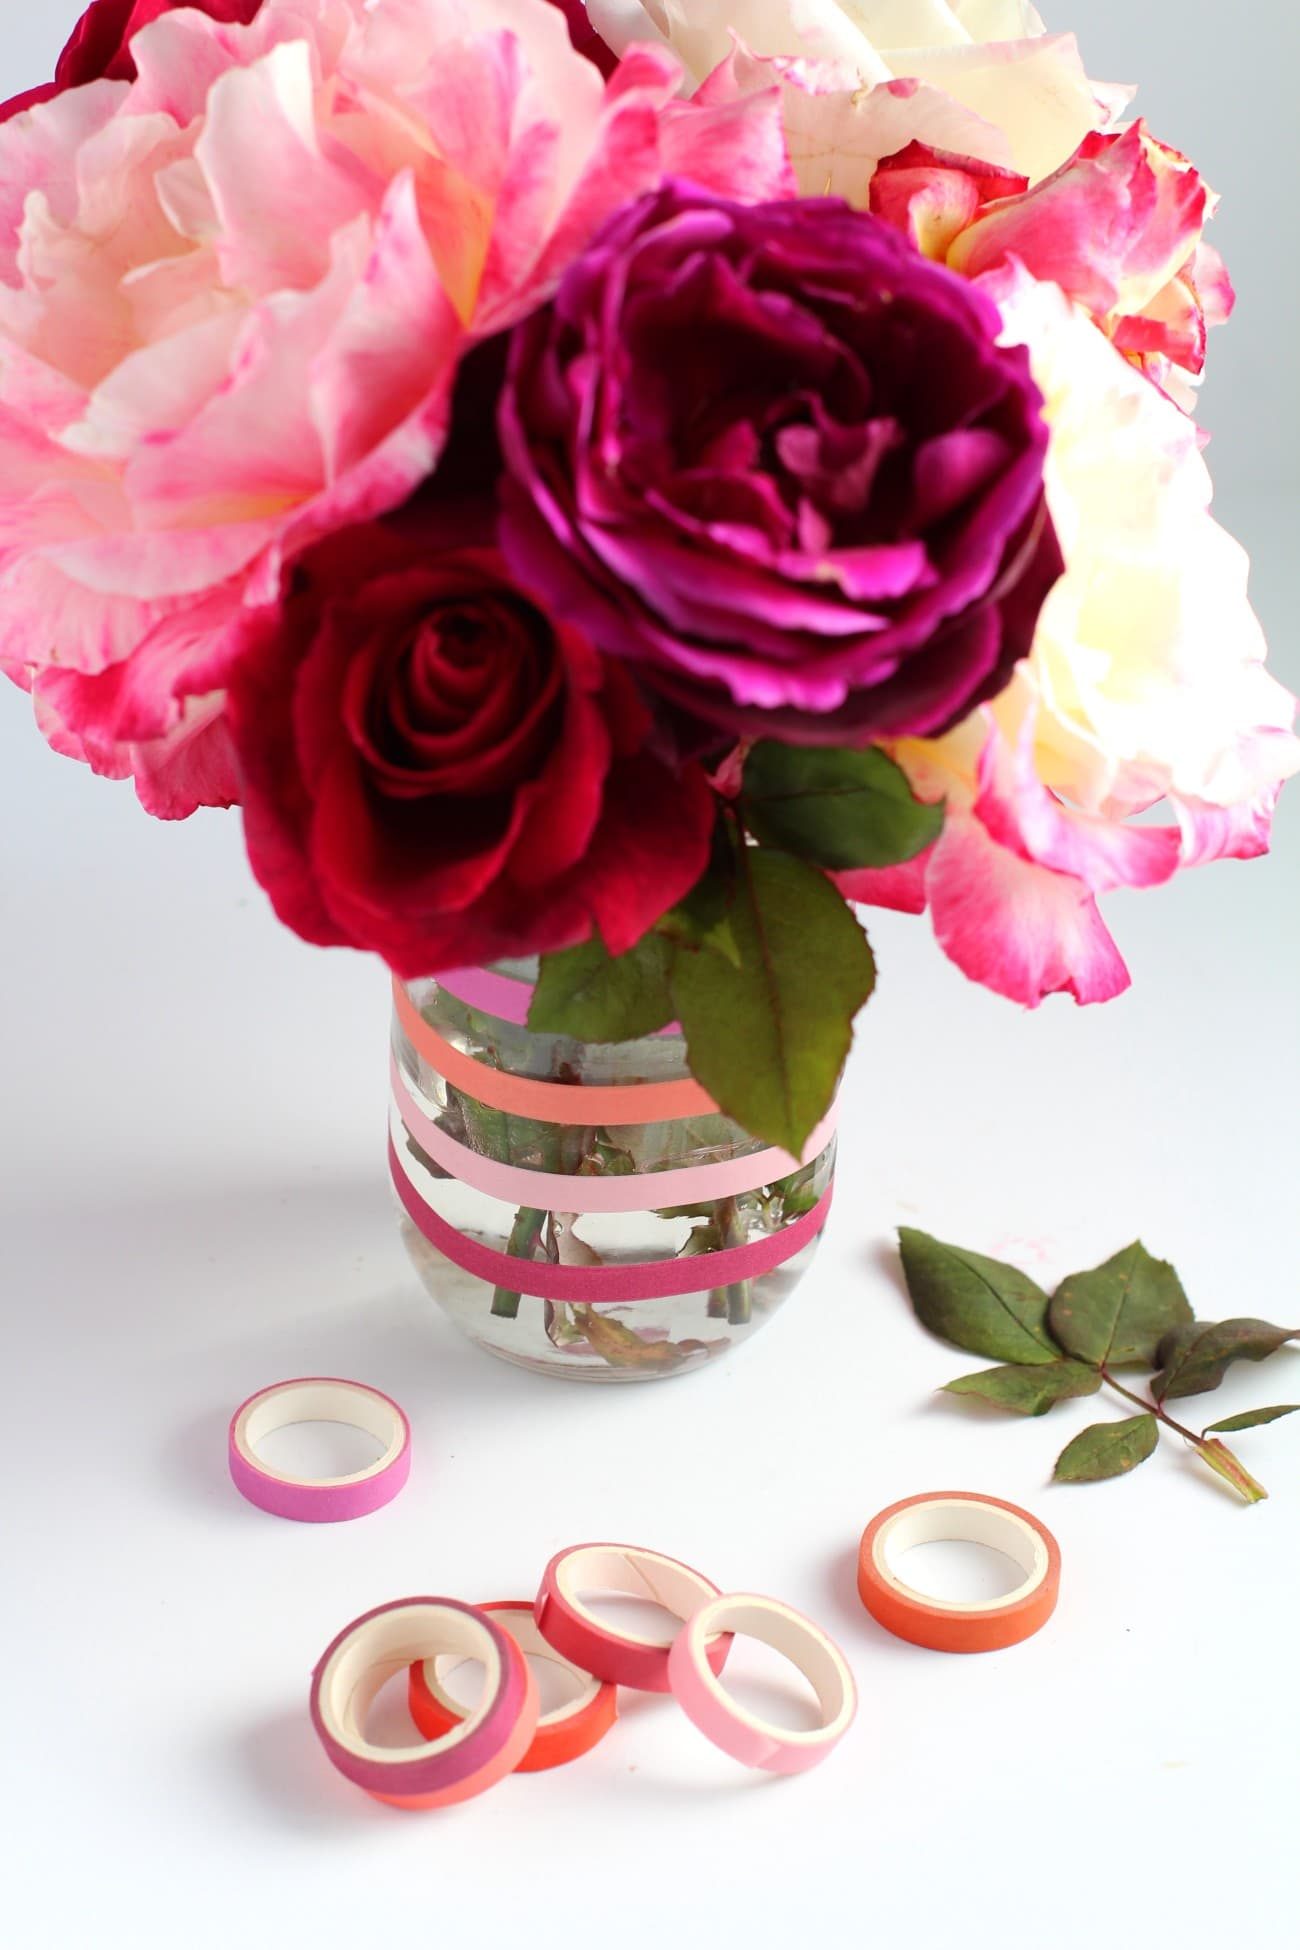 washi tape ideas with flowers and a decorated vase